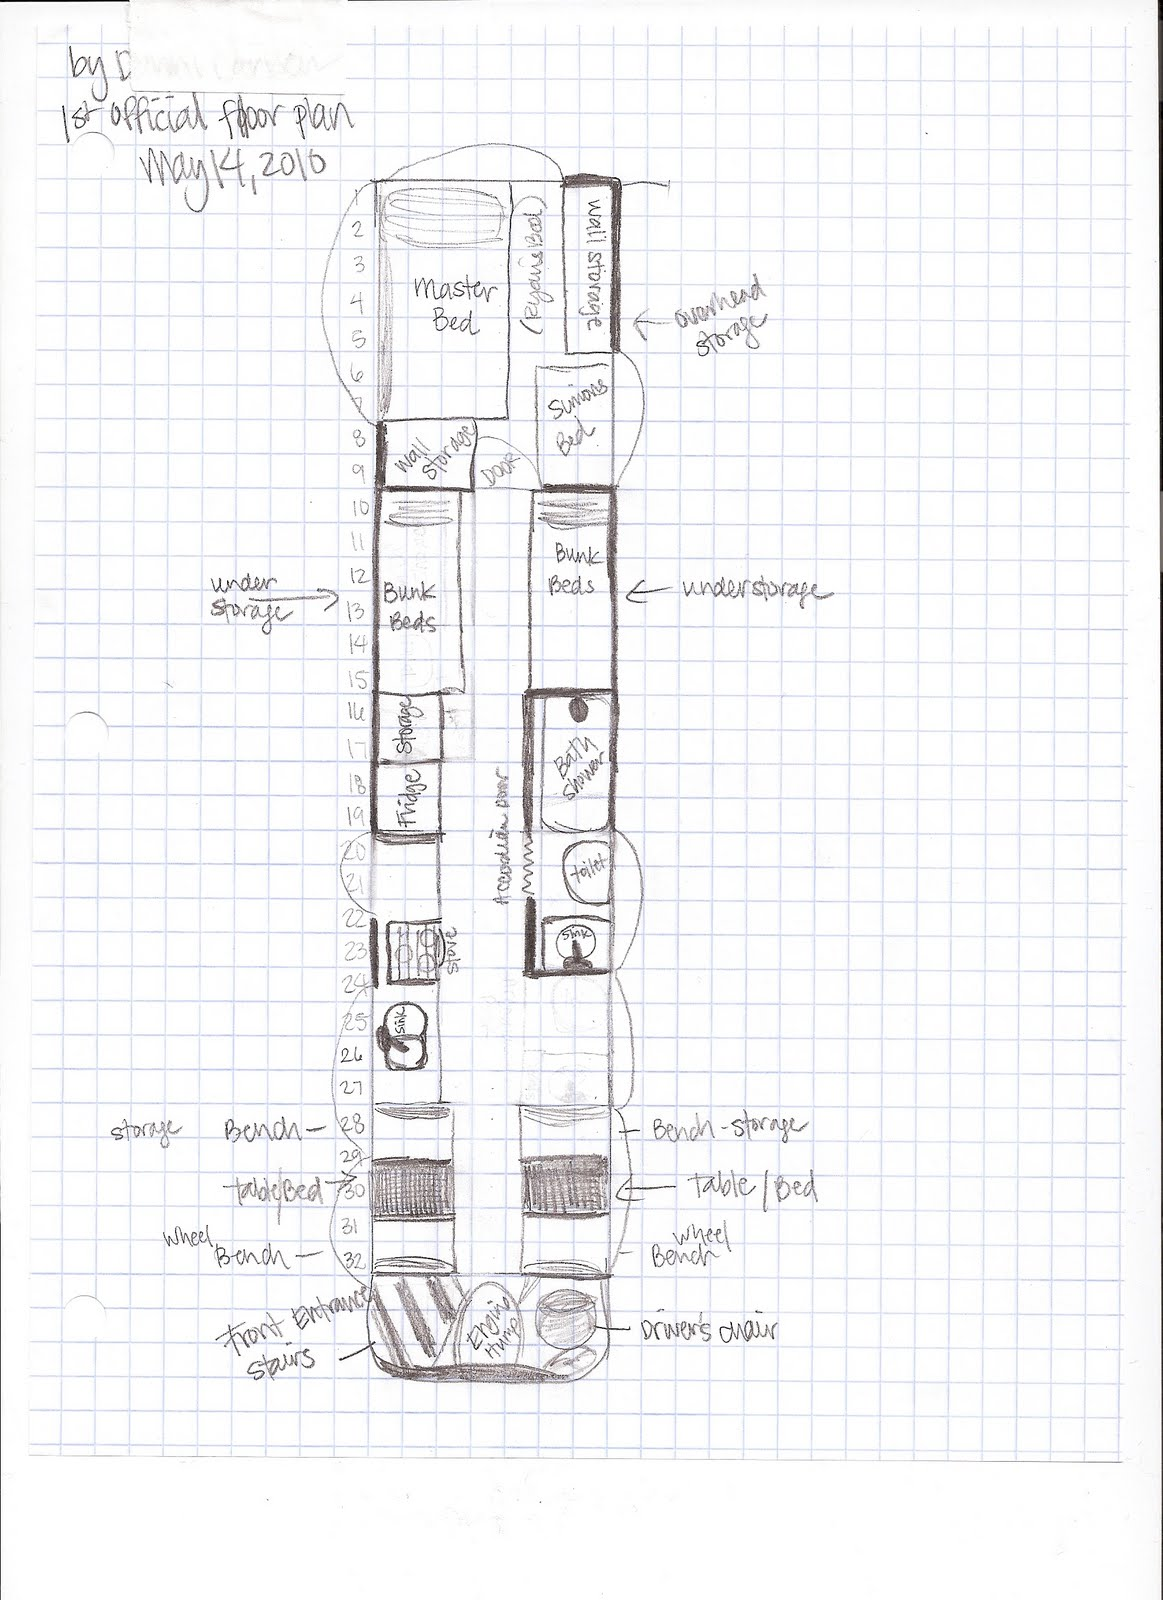 Bus Conversion Floor Plans Unique House Plans